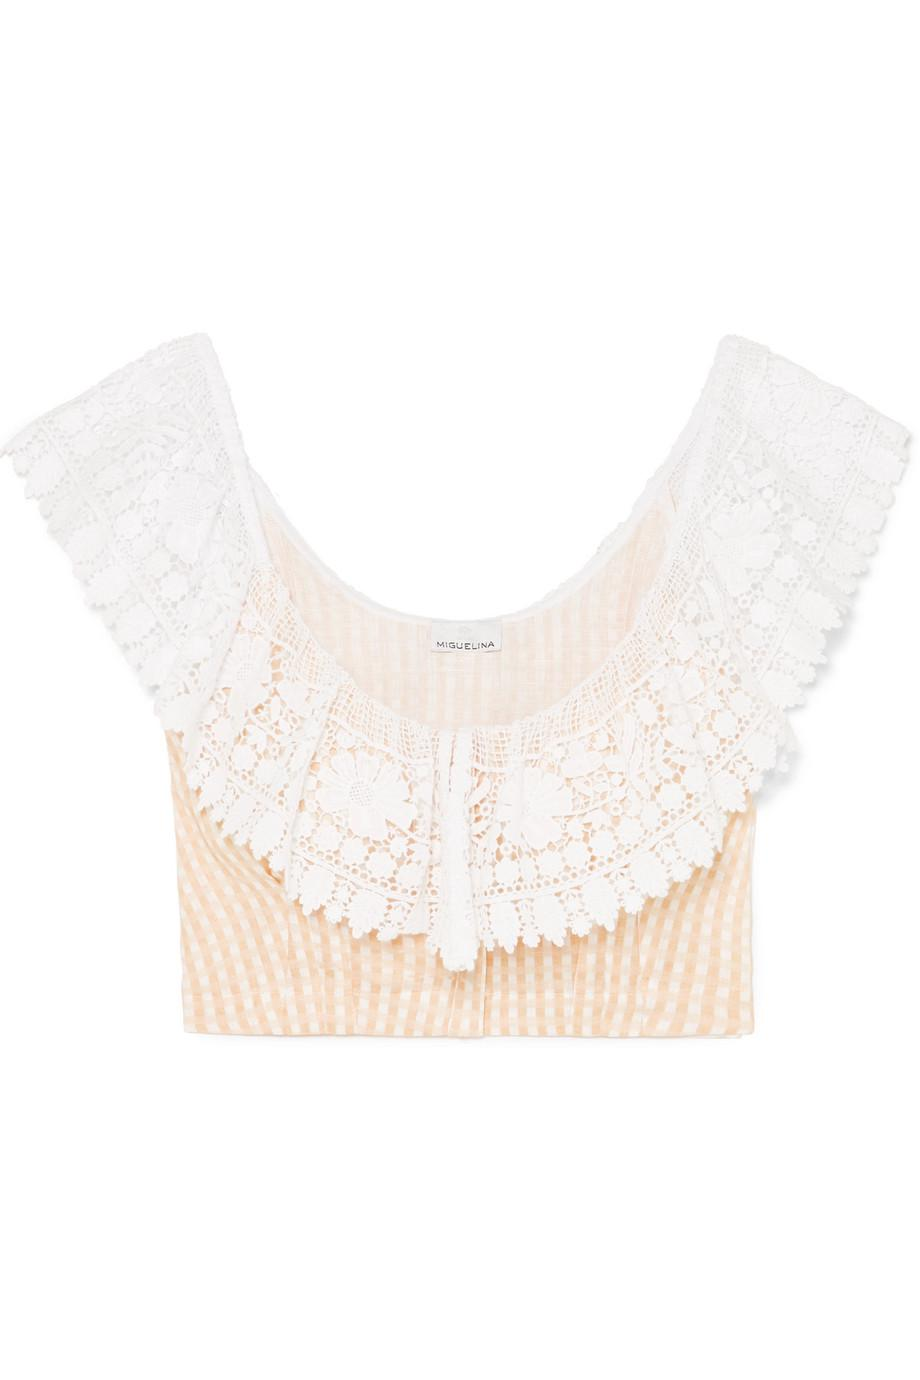 Miguelina Woman Cropped One-shoulder Guipure Lace And Linen Top Pastel Pink Size L Miguelina With Credit Card Free Shipping Top Quality Sale Online Discount Fake Cheap Limited Edition Discount Official iP0i5Cj1k